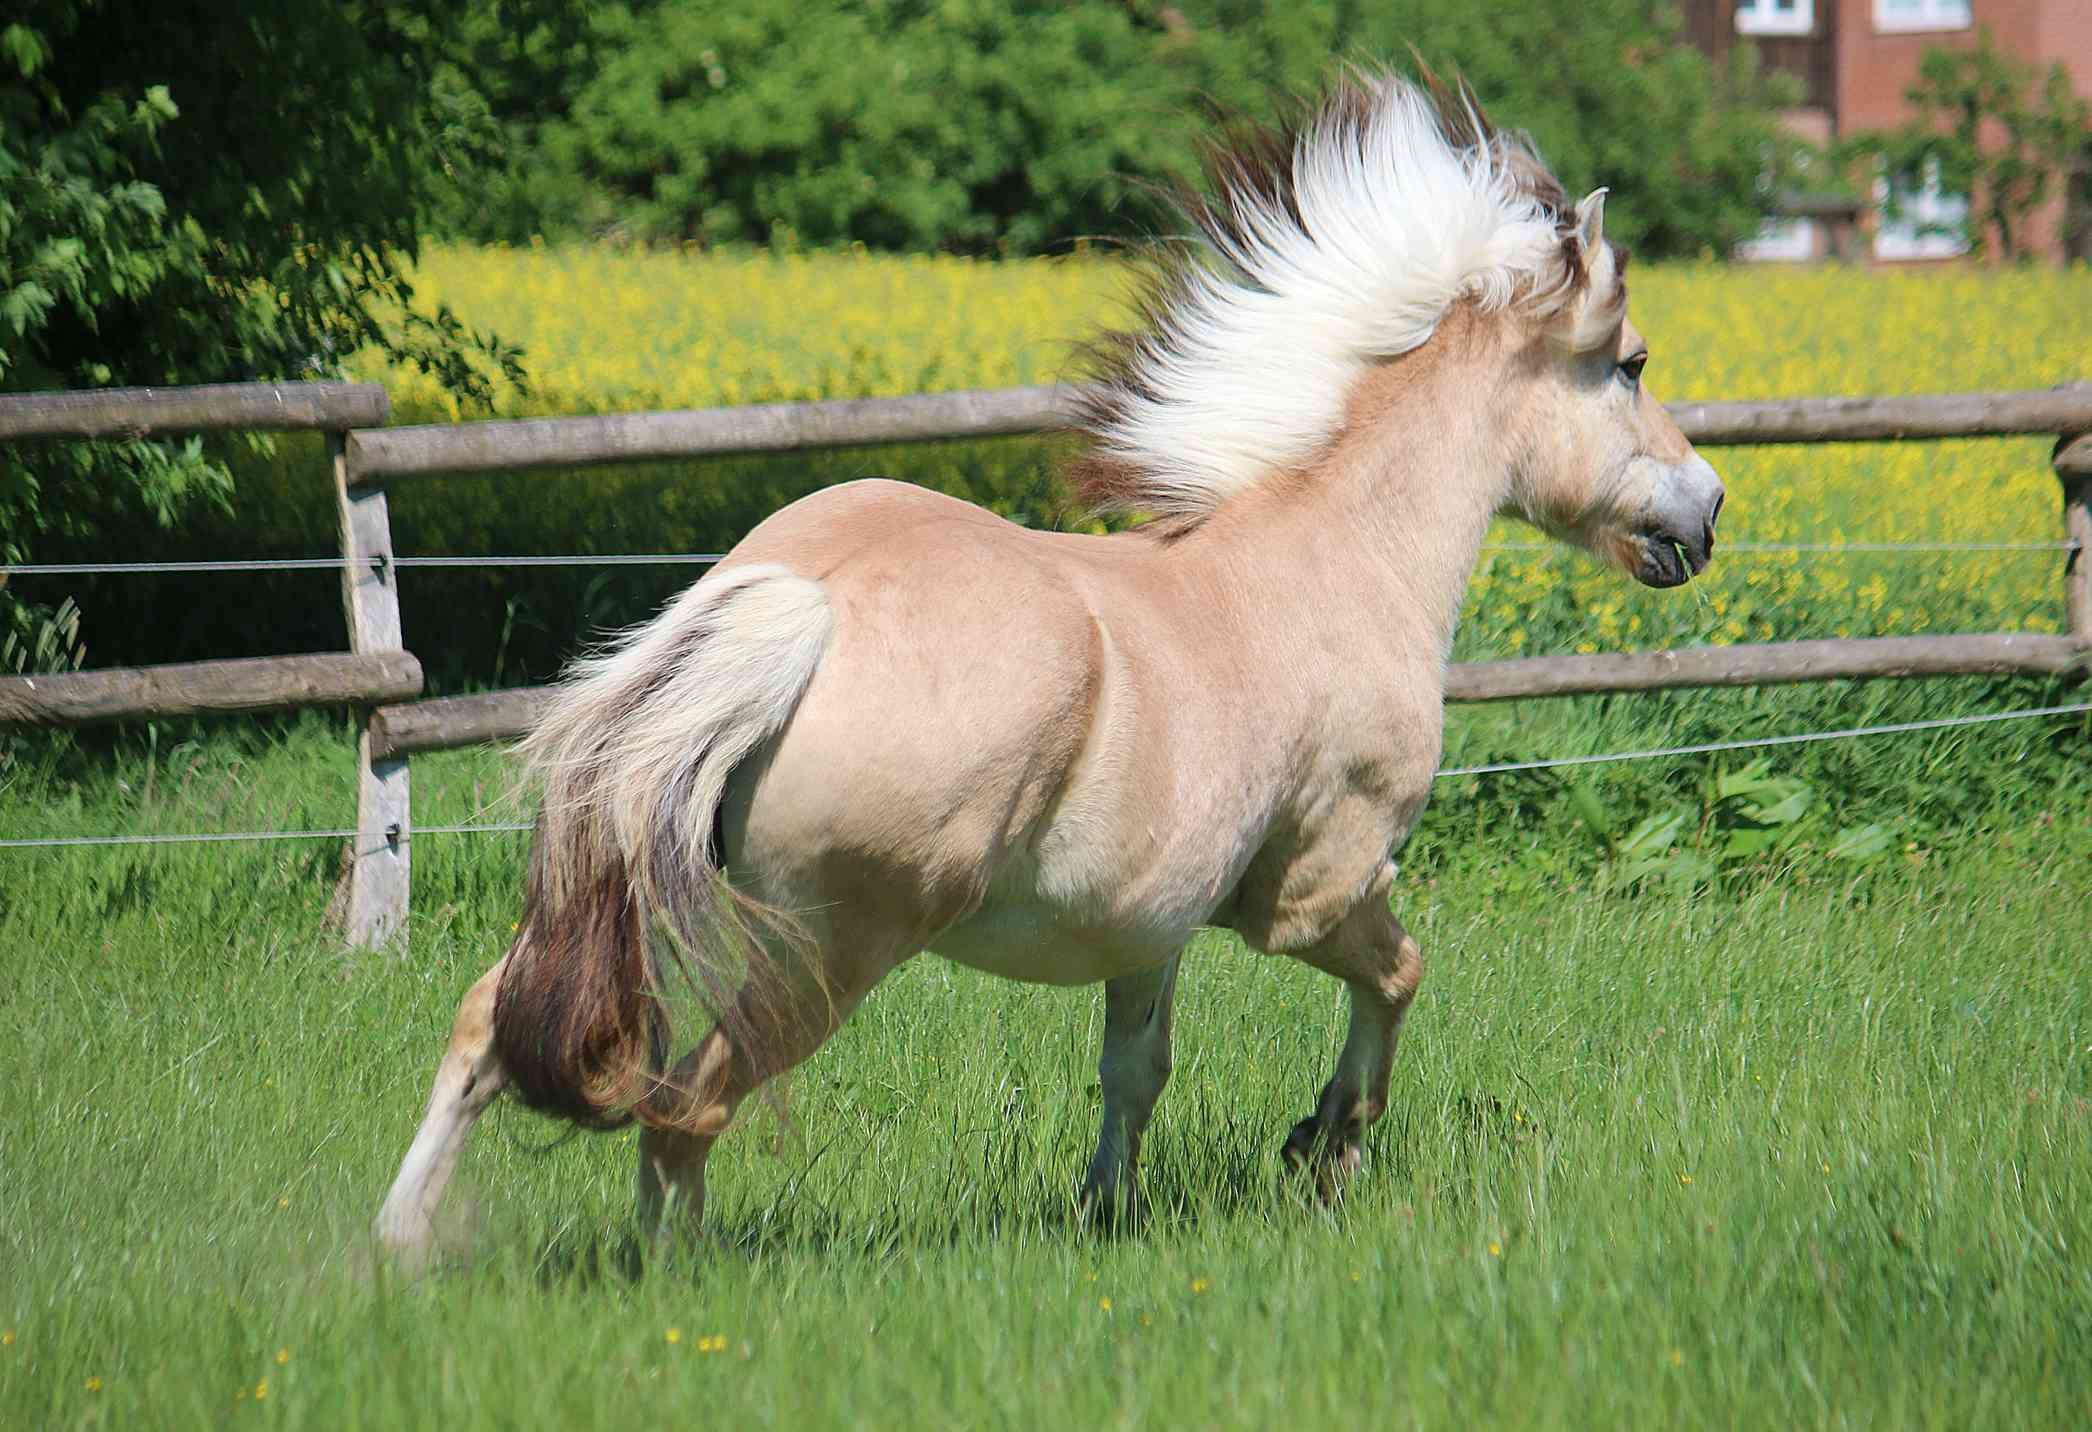 A fjord horse with a flowing black and white mane runs in a field